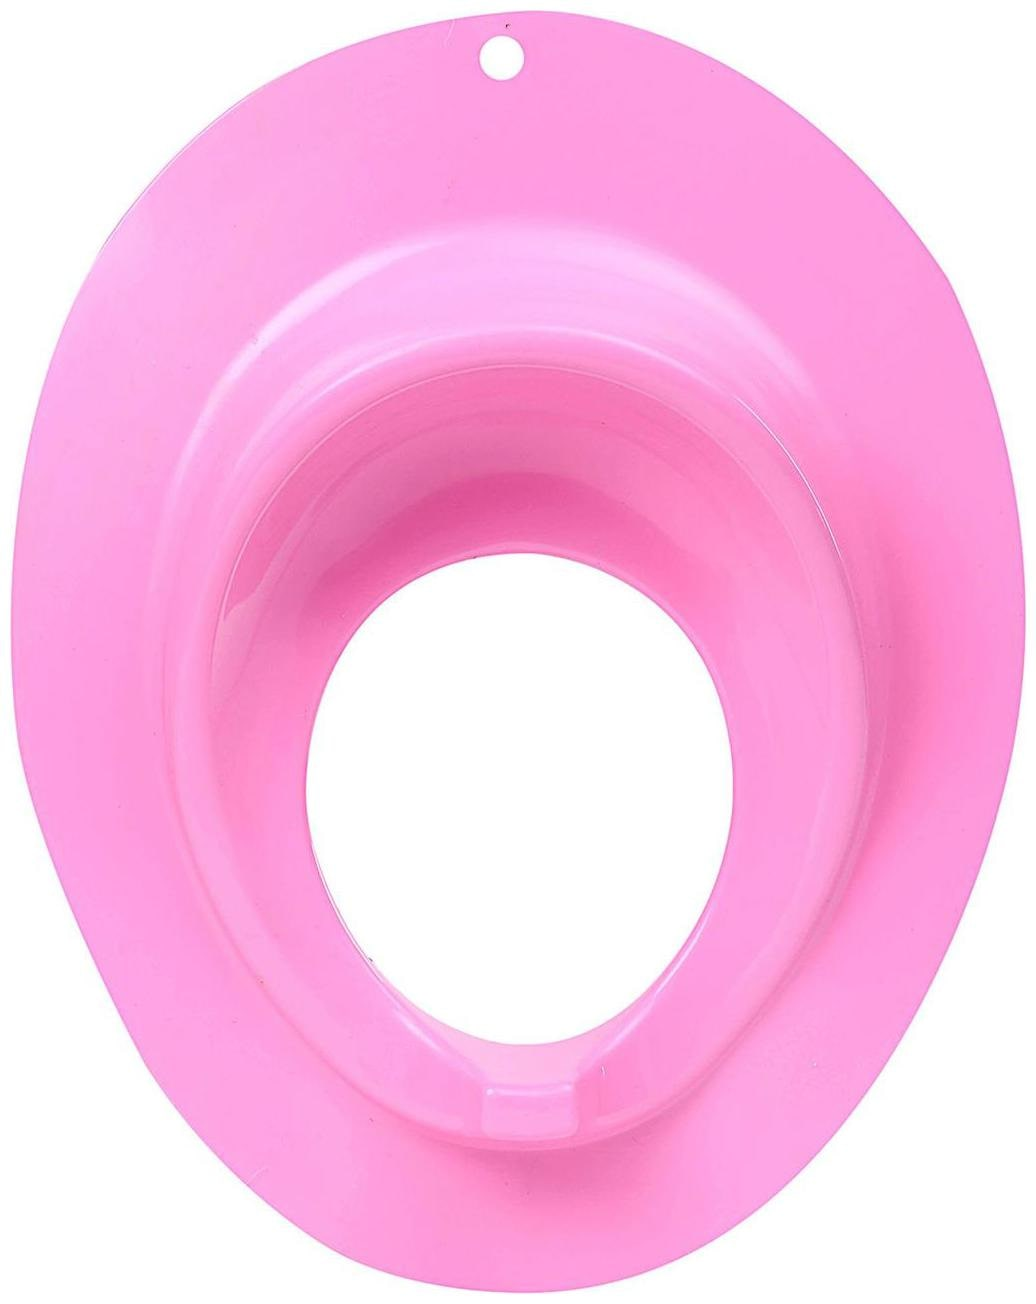 SED Potty Seat Trainer for Kids Pink by Barkat International